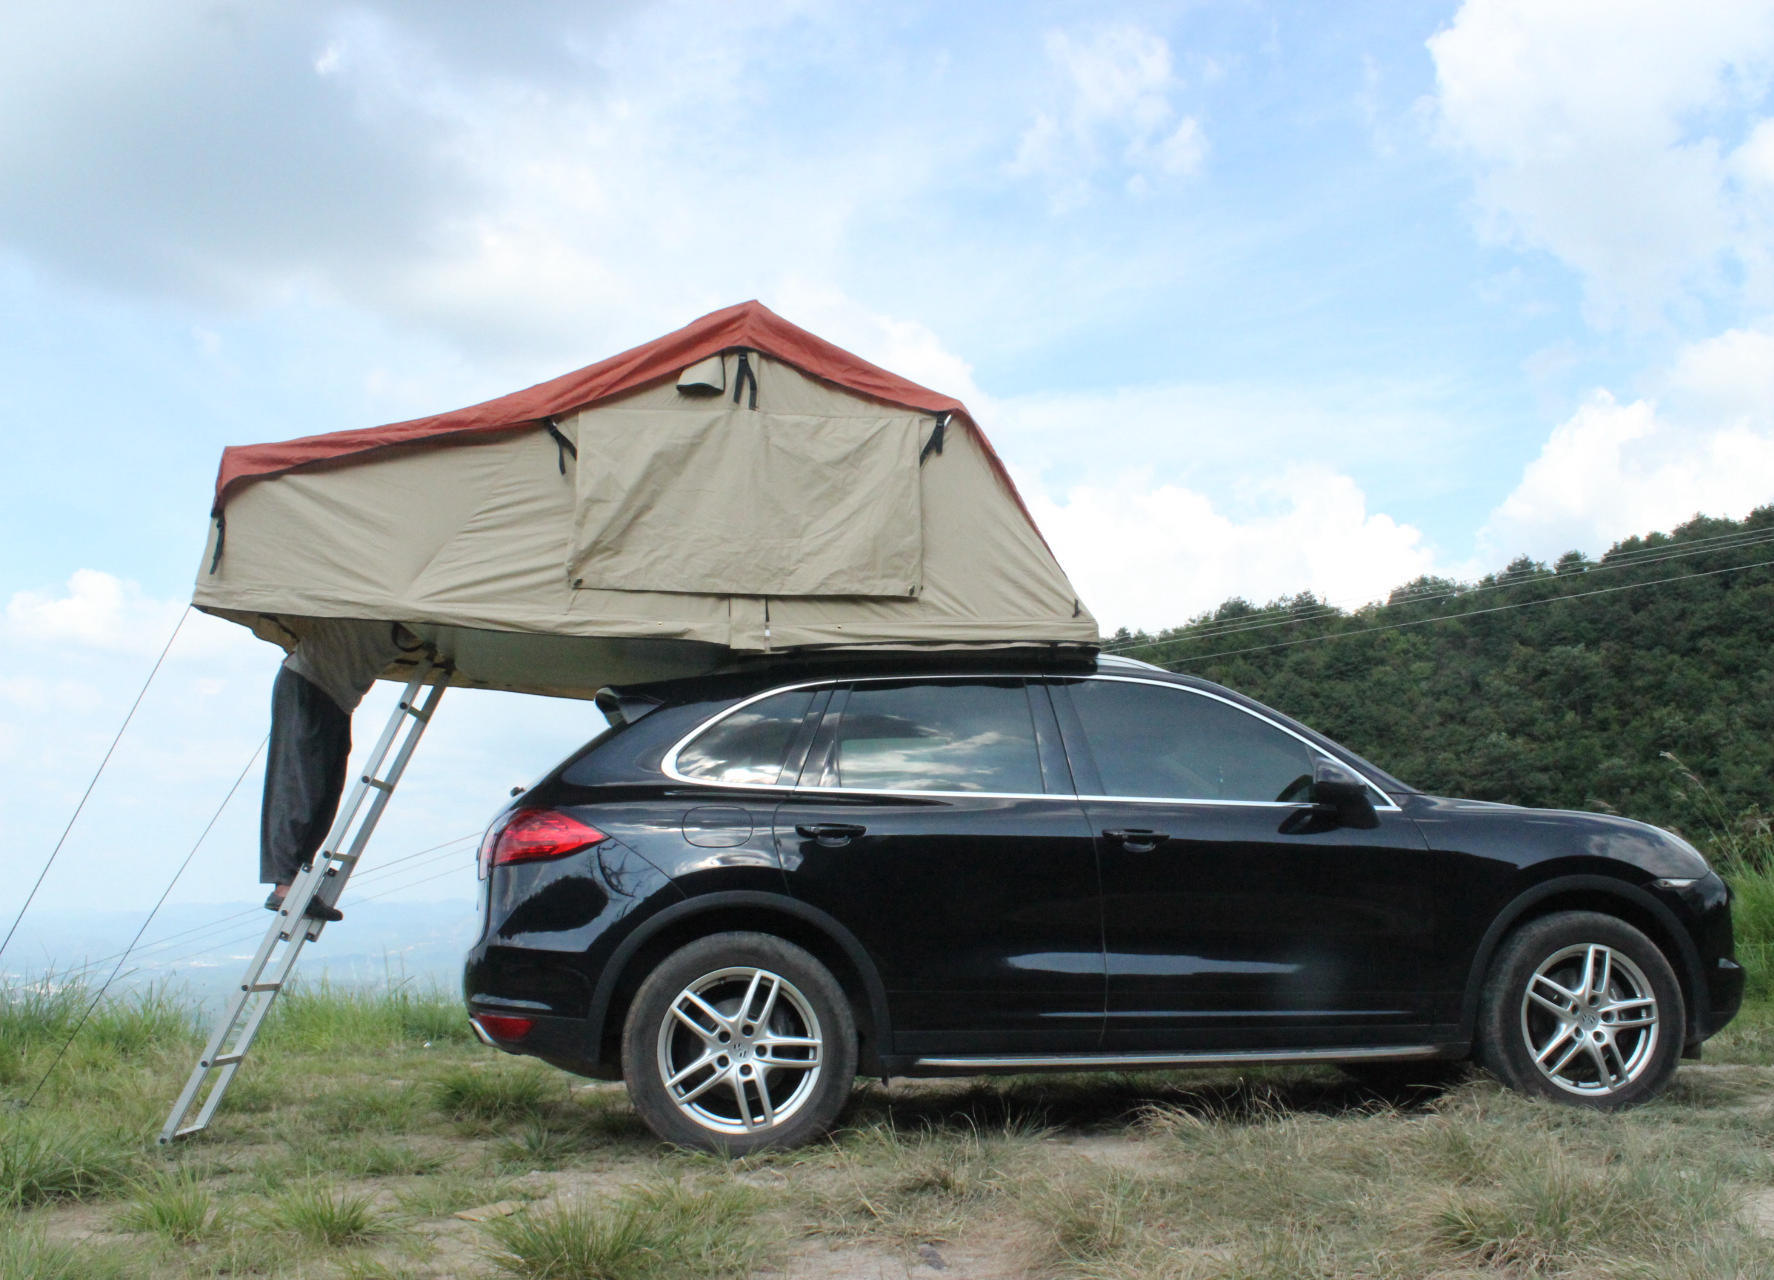 Camping Tent/ Roof Top Tent for Camping